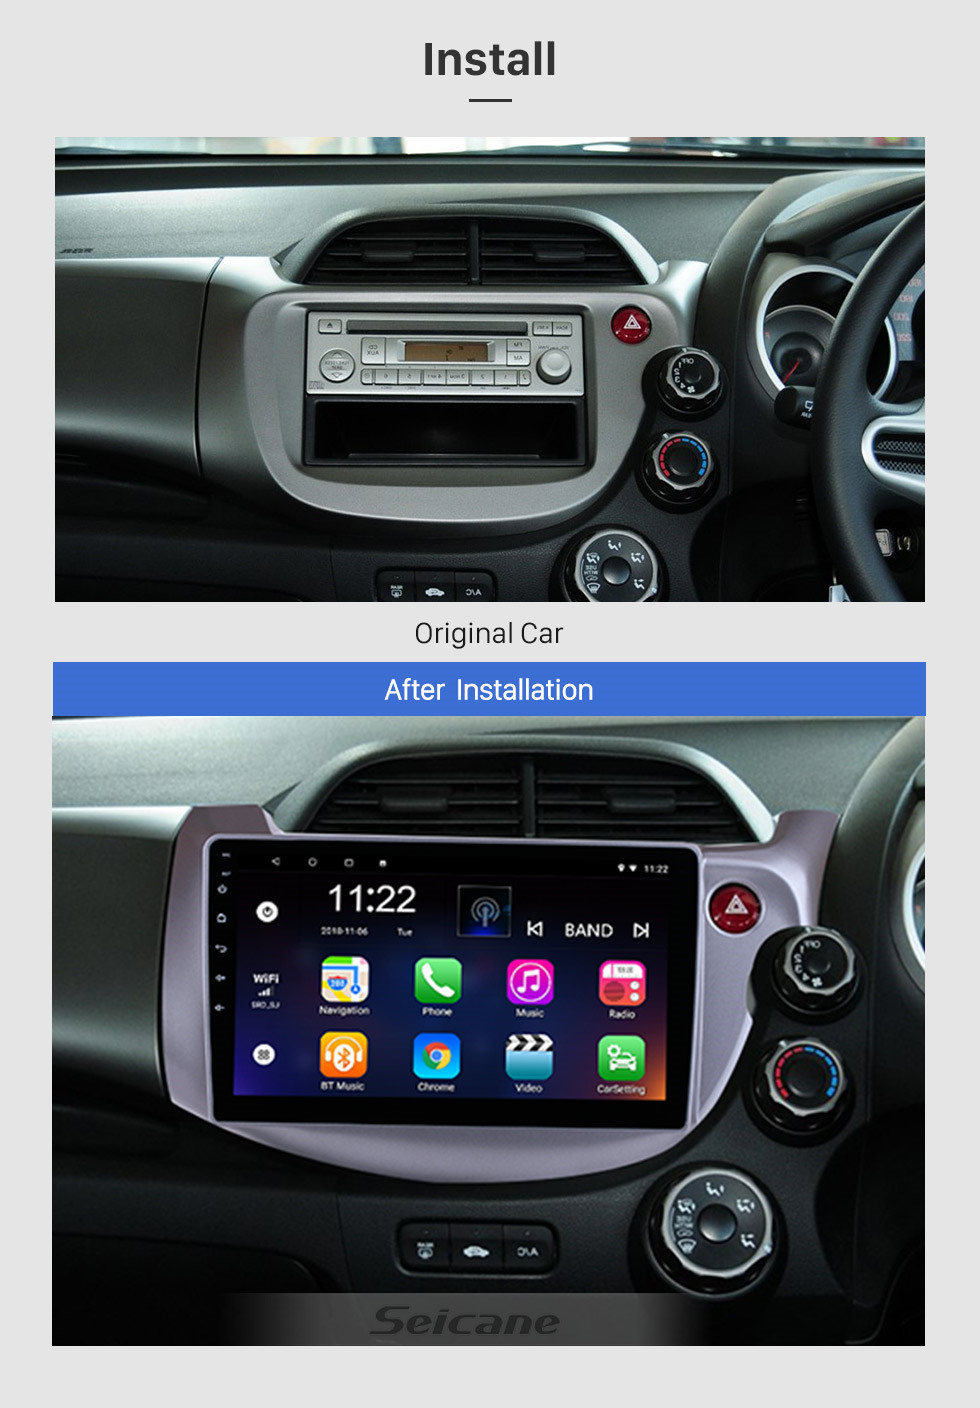 Seicane Android 10.0 2007-2013 HONDA FIT JAZZ RHD 10.1 inch Radio GPS Navigation Head Unit Touch Screen Bluetooth Music WiFi OBD2 Mirror Link Rearview Camera Video AUX DVR